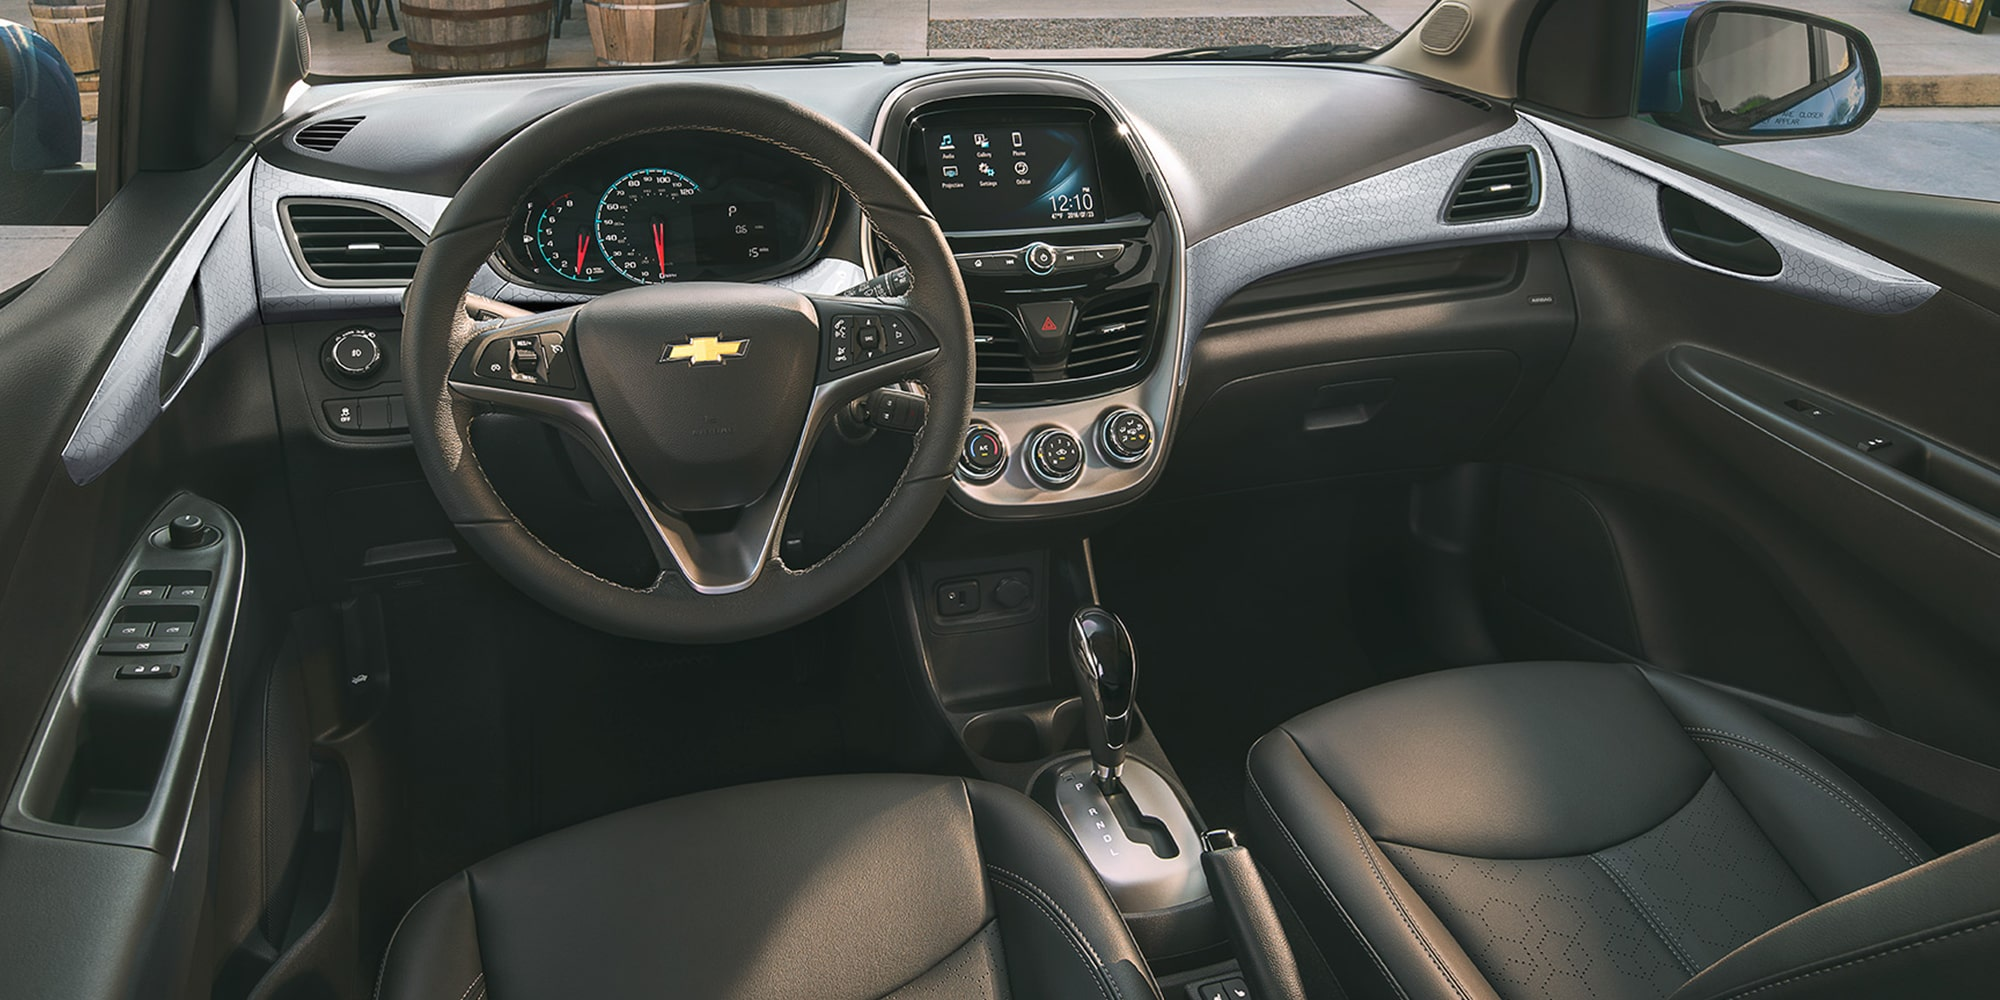 Wonderful Chevrolet 2018 Spark City Car ACTIV: Interior